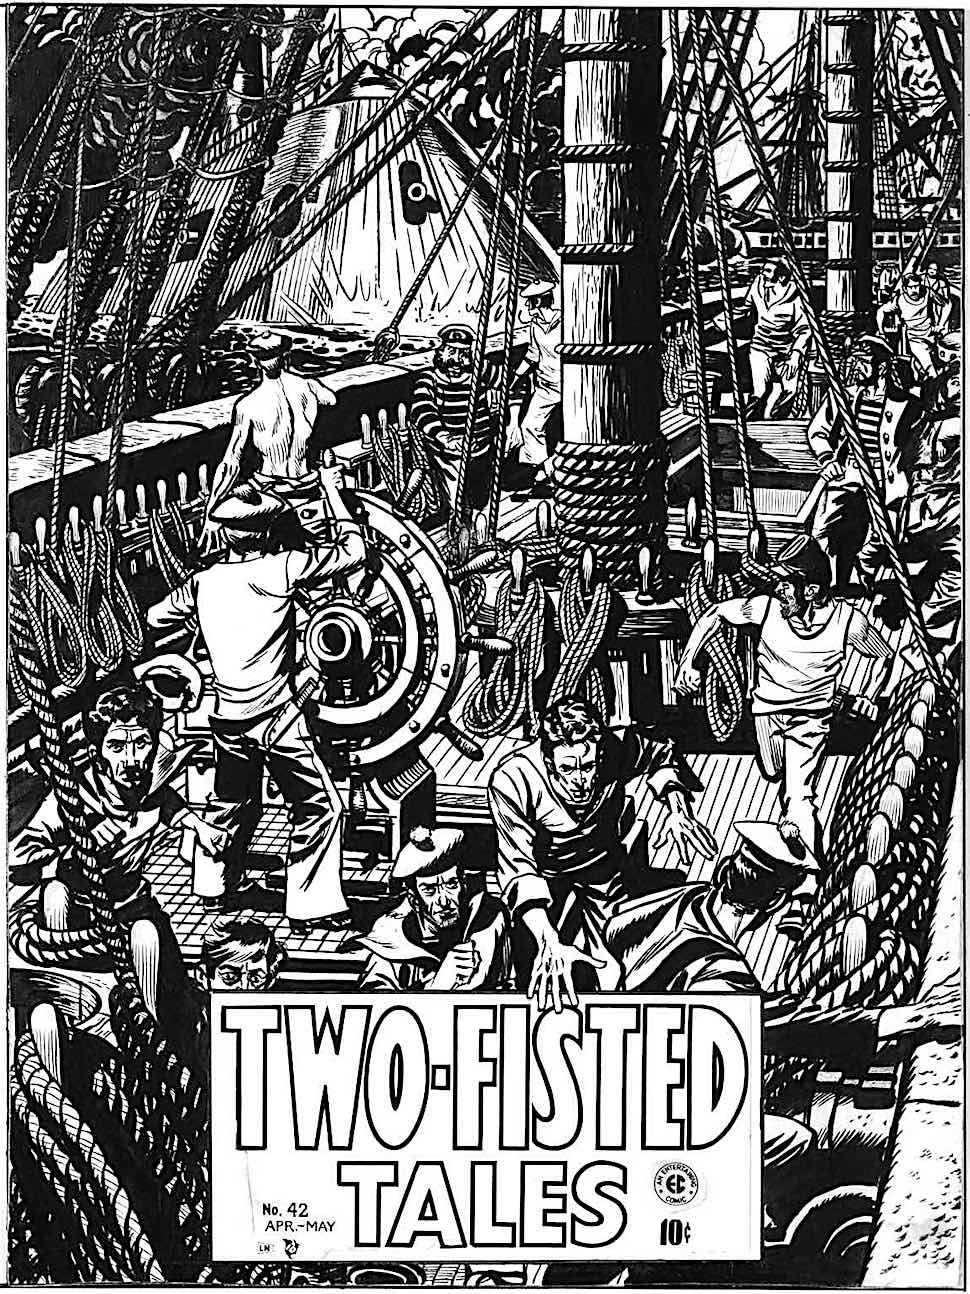 a Wallace Wood story cover for Two Fisted Tales